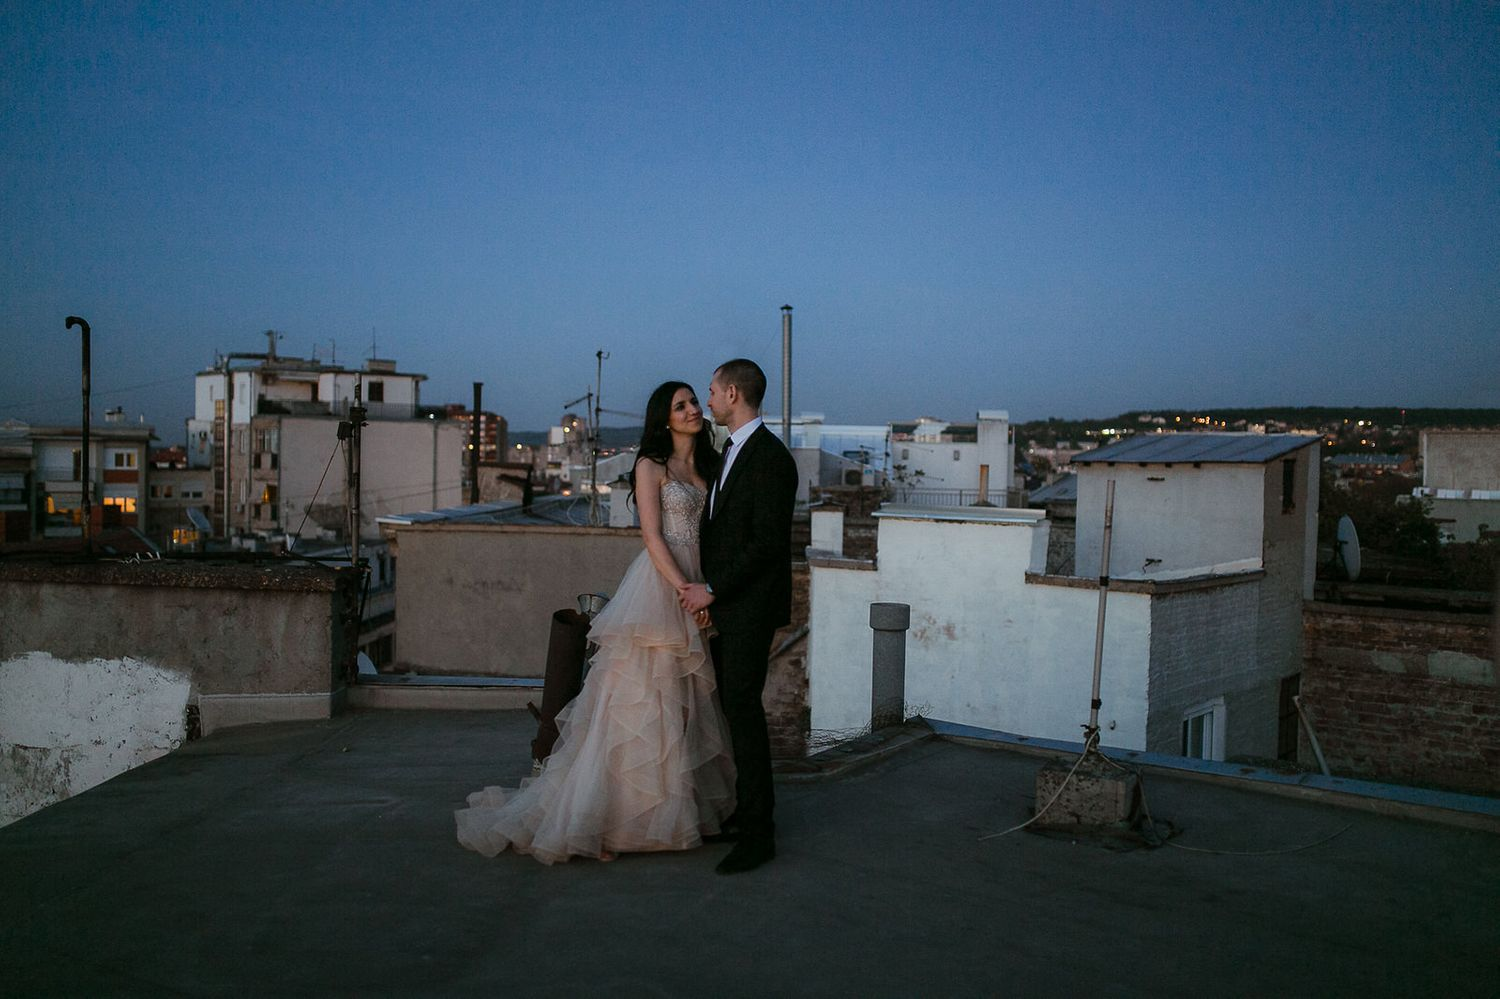 Bride and groom on a rooftop at sunset